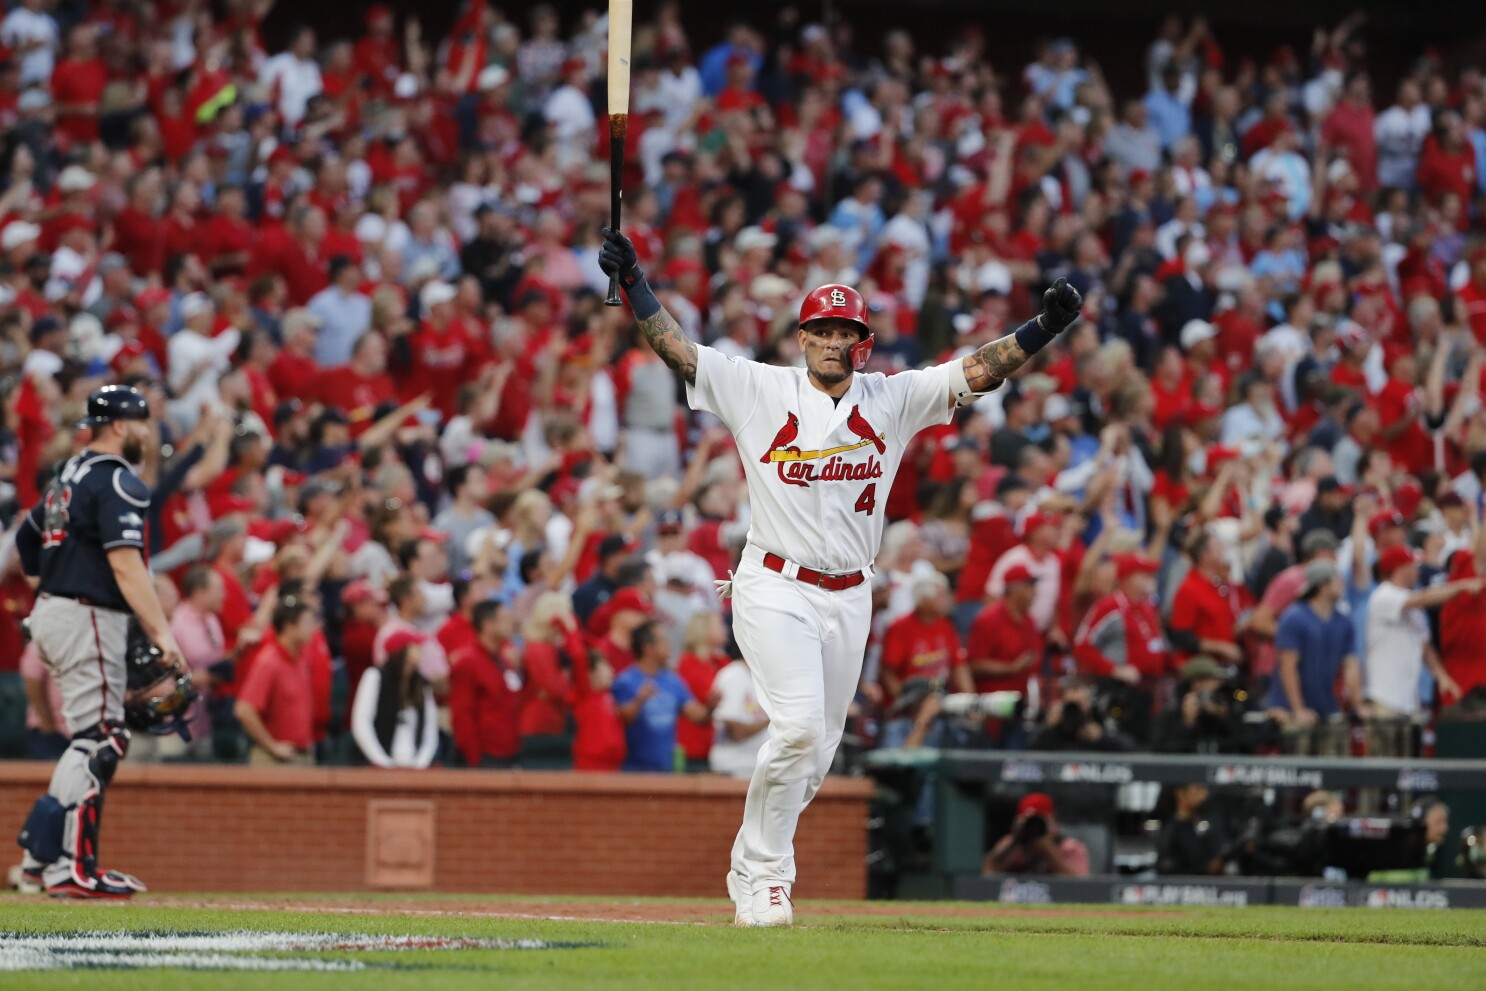 Yadier Molina provides more heroics for Cardinals in NLDS - Los Angeles  Times